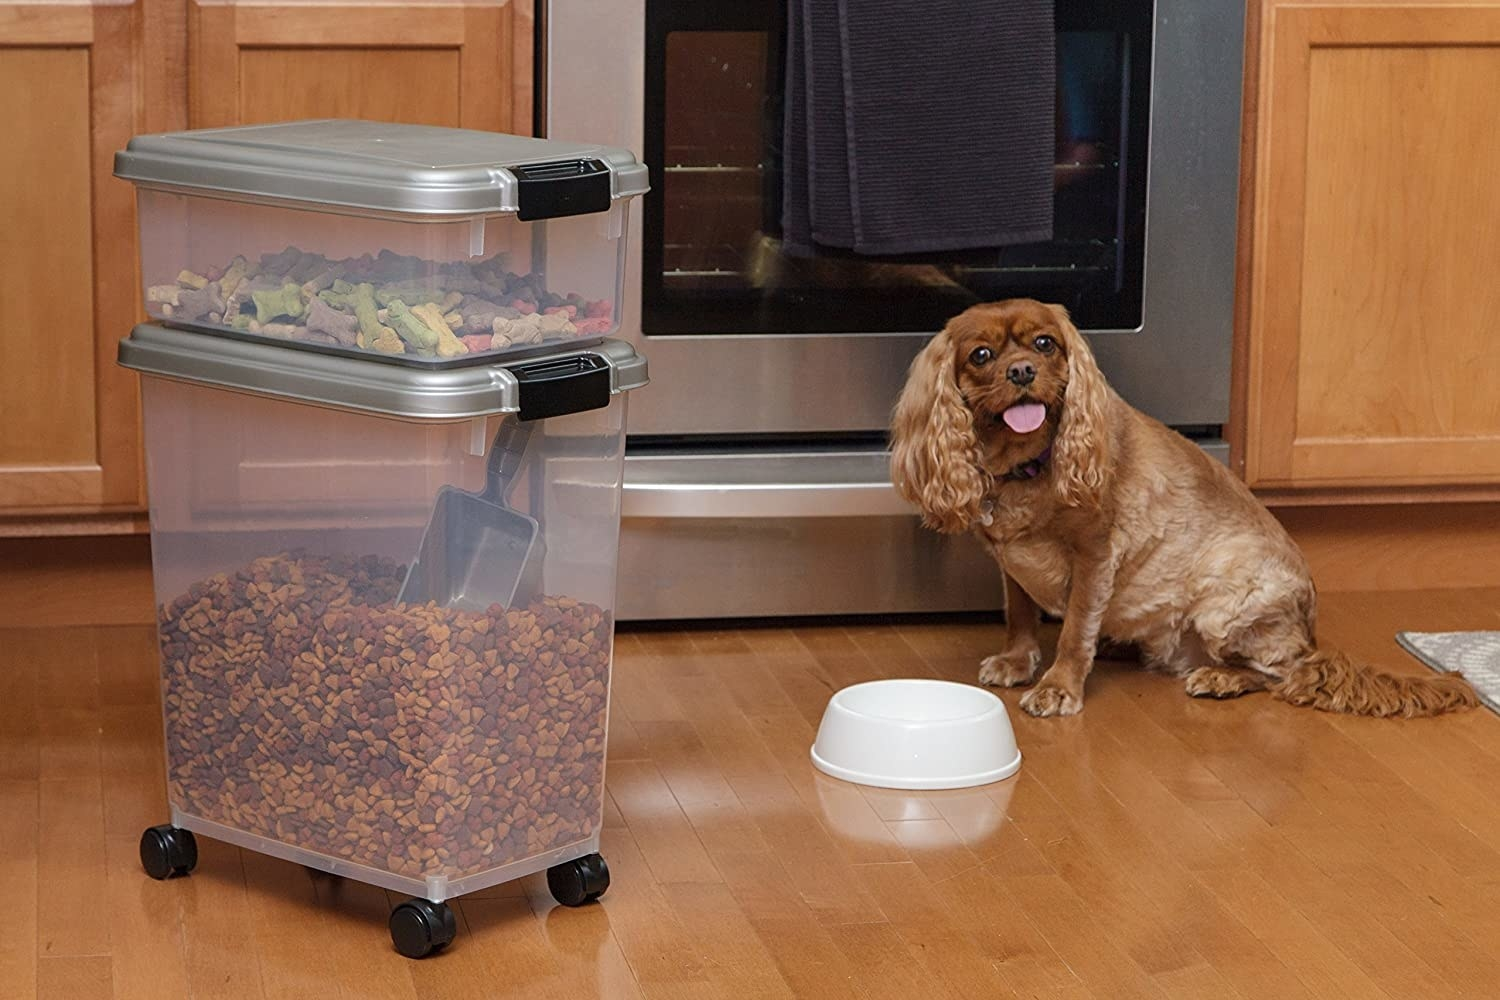 A large plastic container with wheels is full of dog food and a smaller container is stacked on top